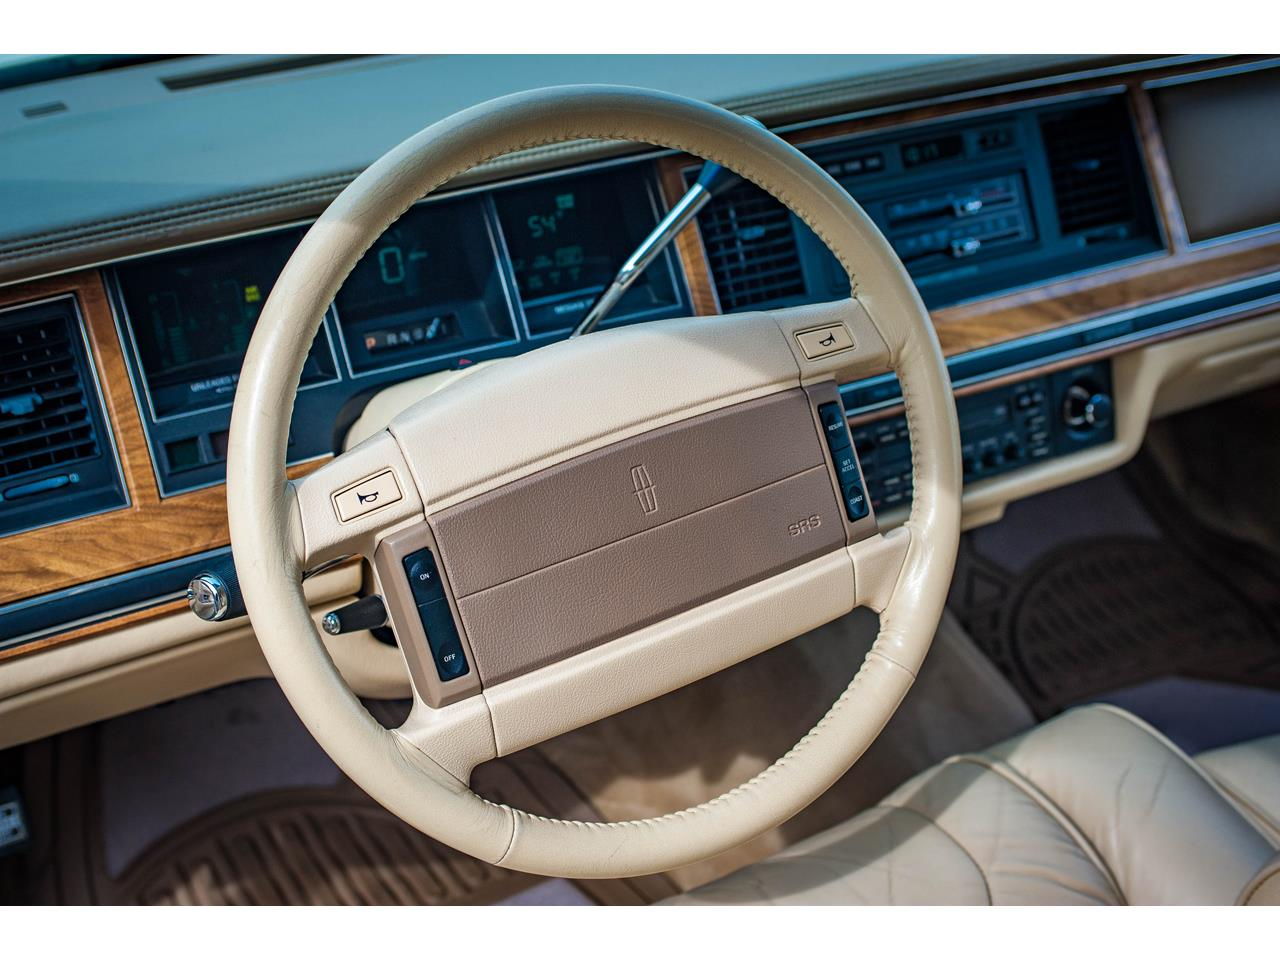 Large Picture of '90 Town Car located in O'Fallon Illinois - $16,500.00 Offered by Gateway Classic Cars - St. Louis - QB8G